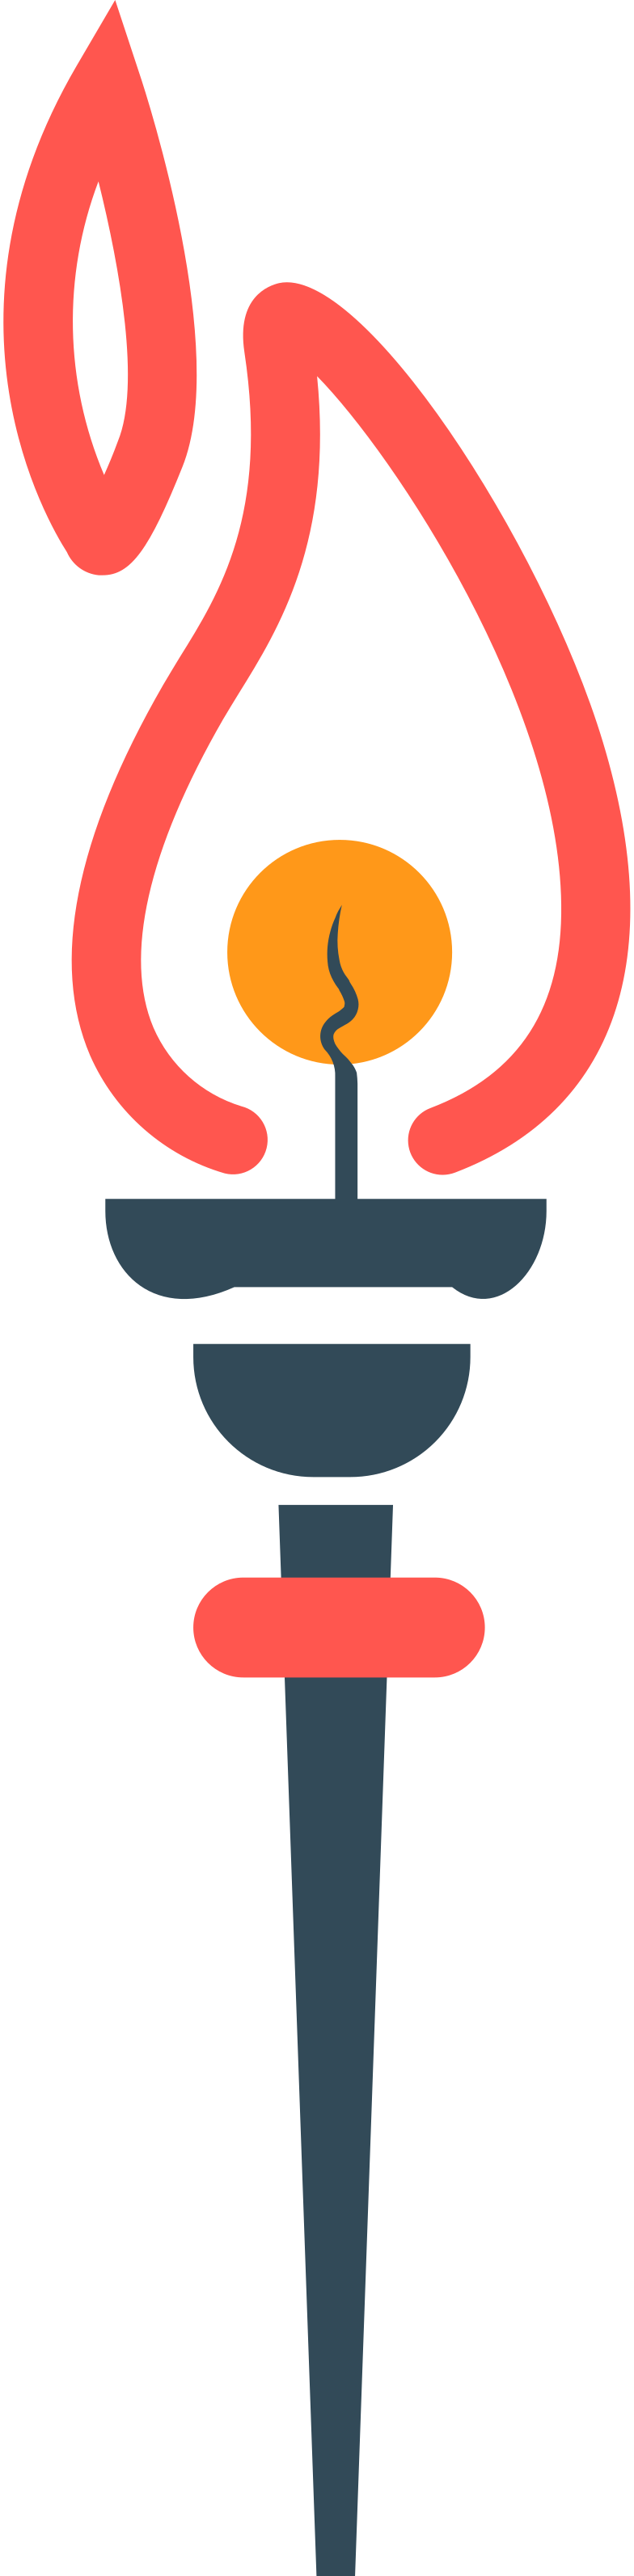 style torch Vector images in PNG and SVG | Icons8 Illustrations